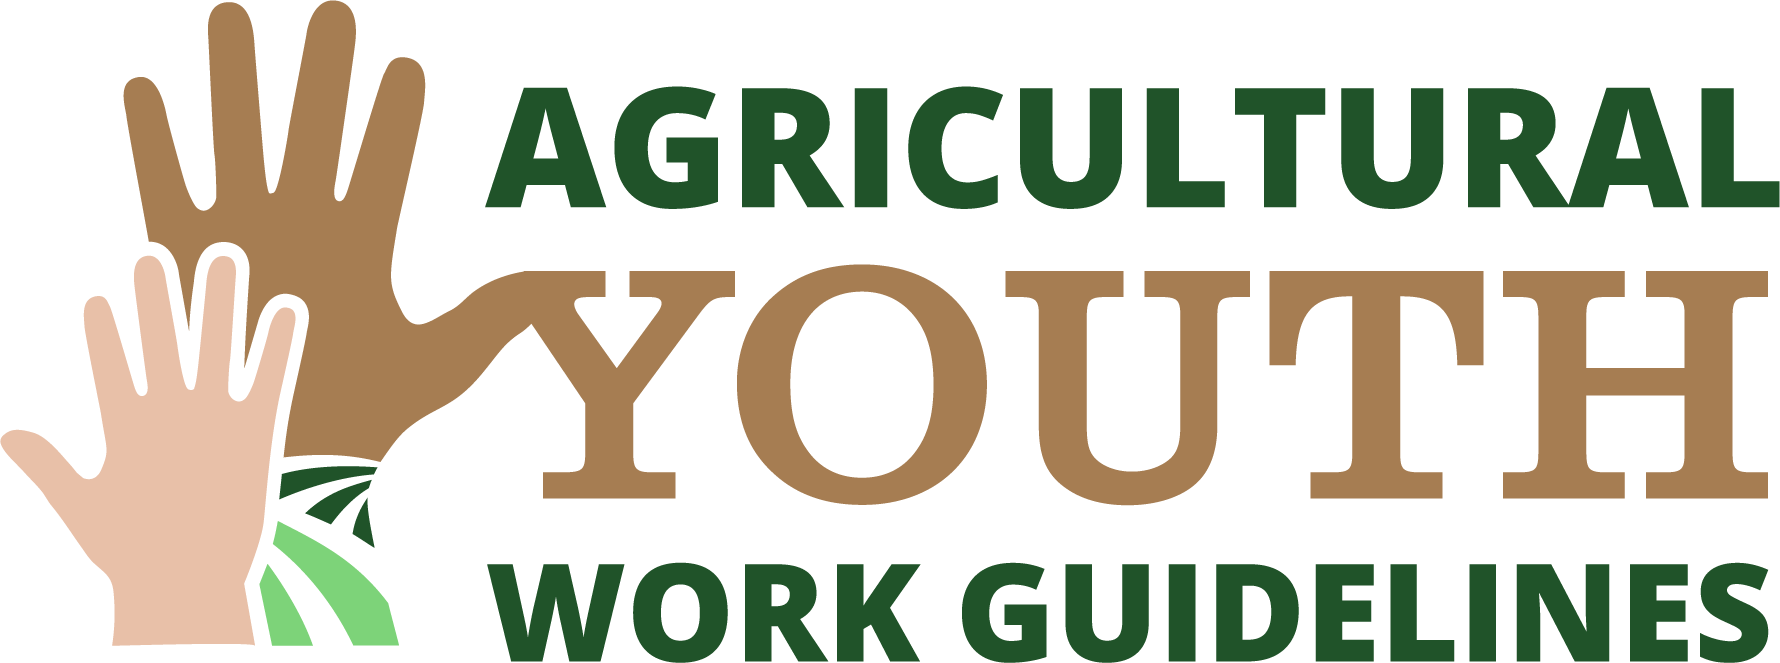 Ag Youth Work Guidelines